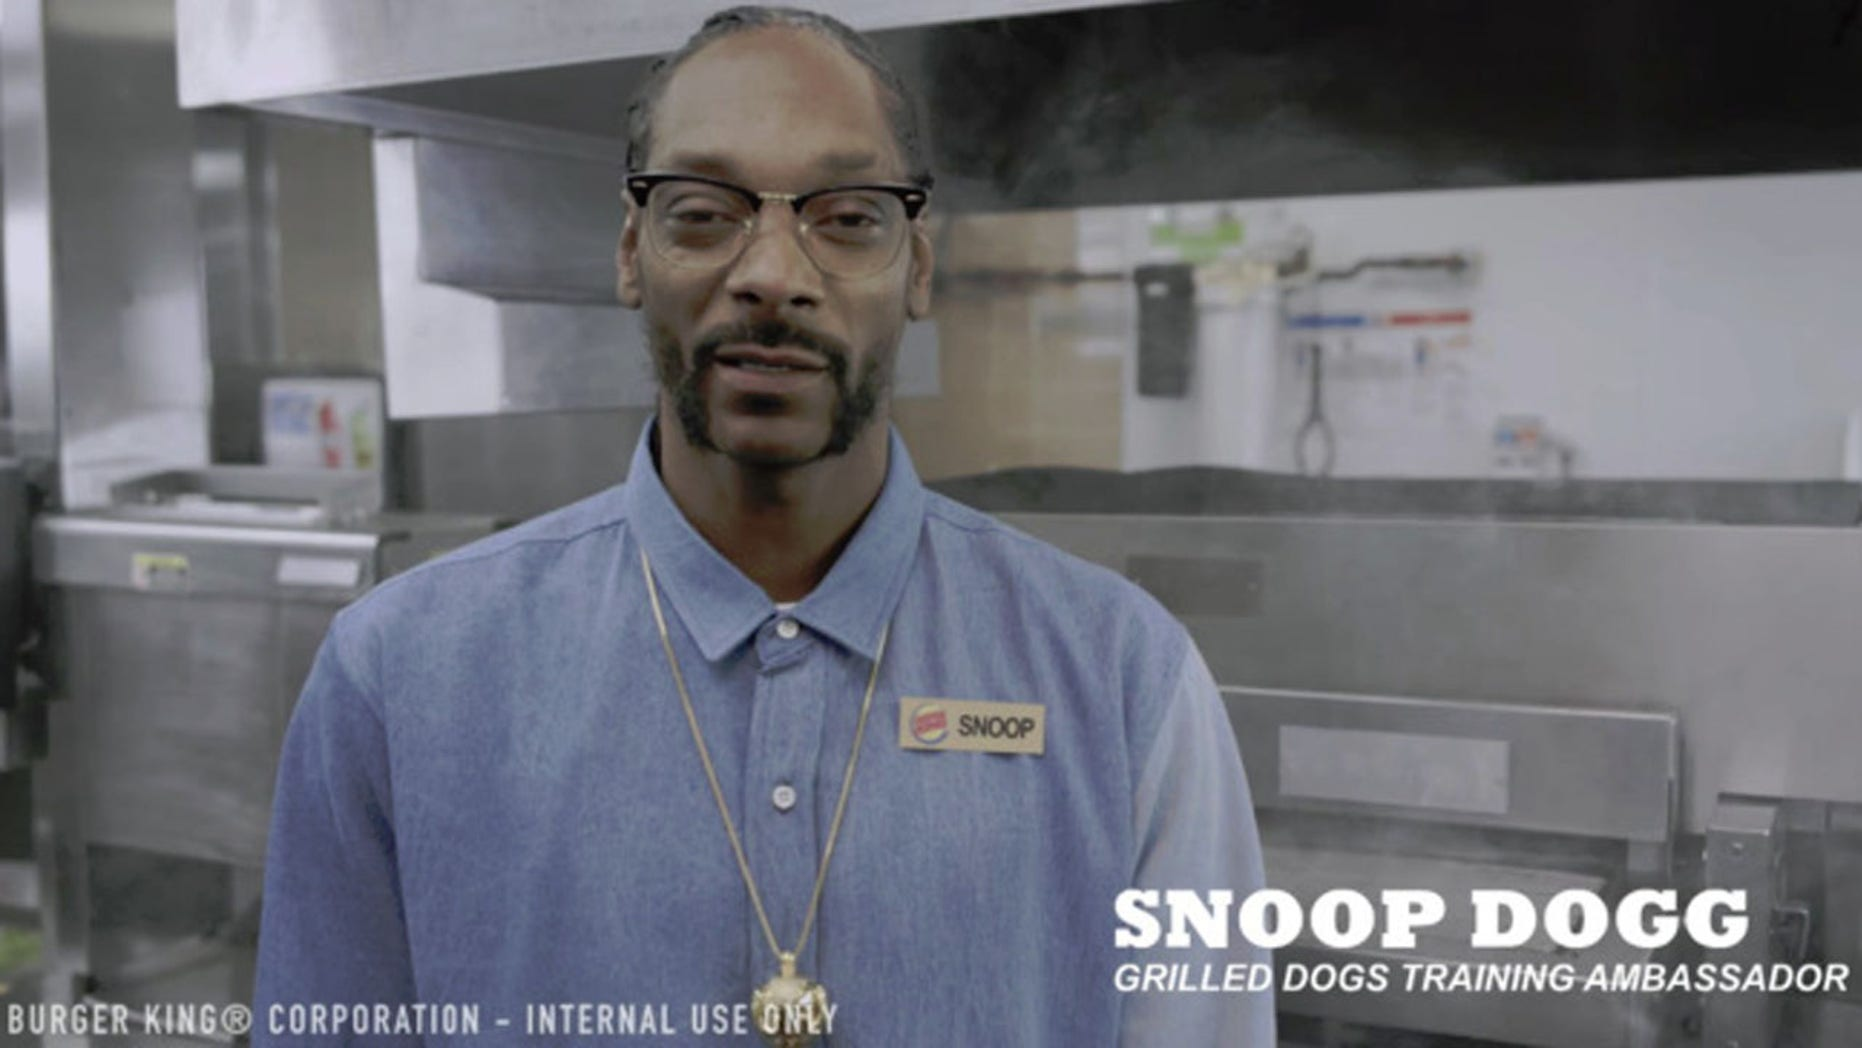 Snoop Dogg teaches Burger King staff how to grill up dogs his way.